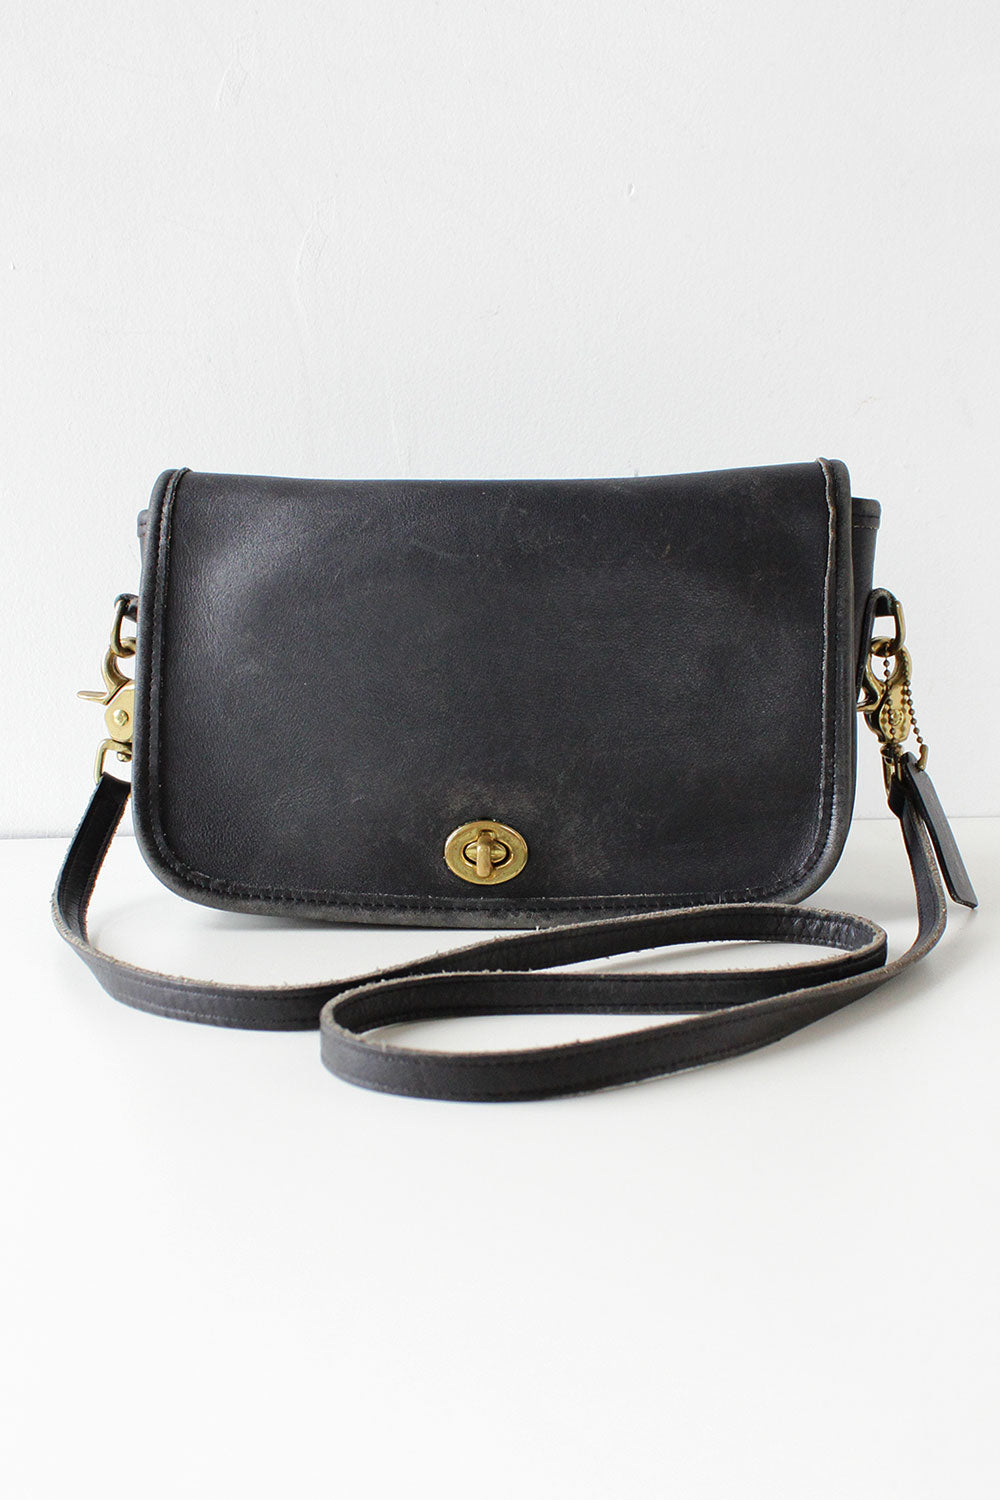 Coal Coach Turnlock Crossbody